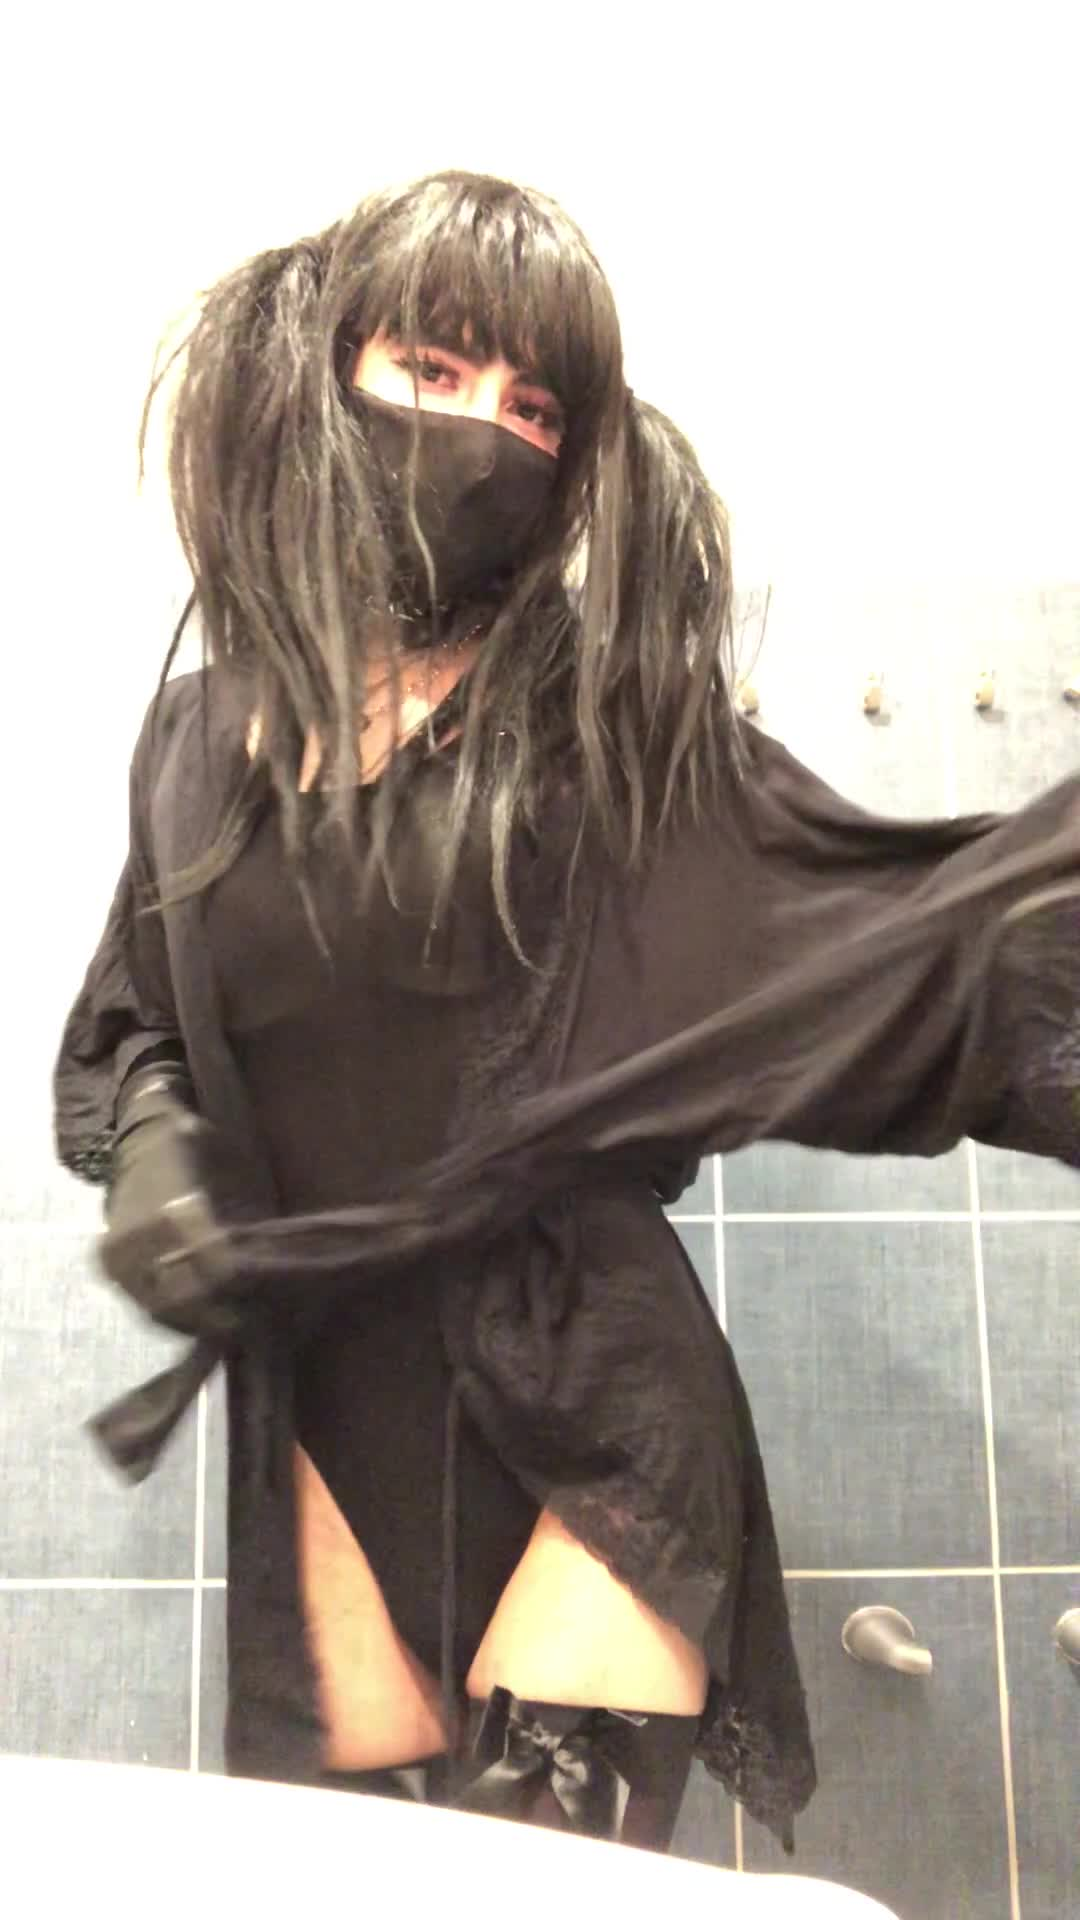 I just wanna be at the club turning on straight guys and sucking cock.🥺